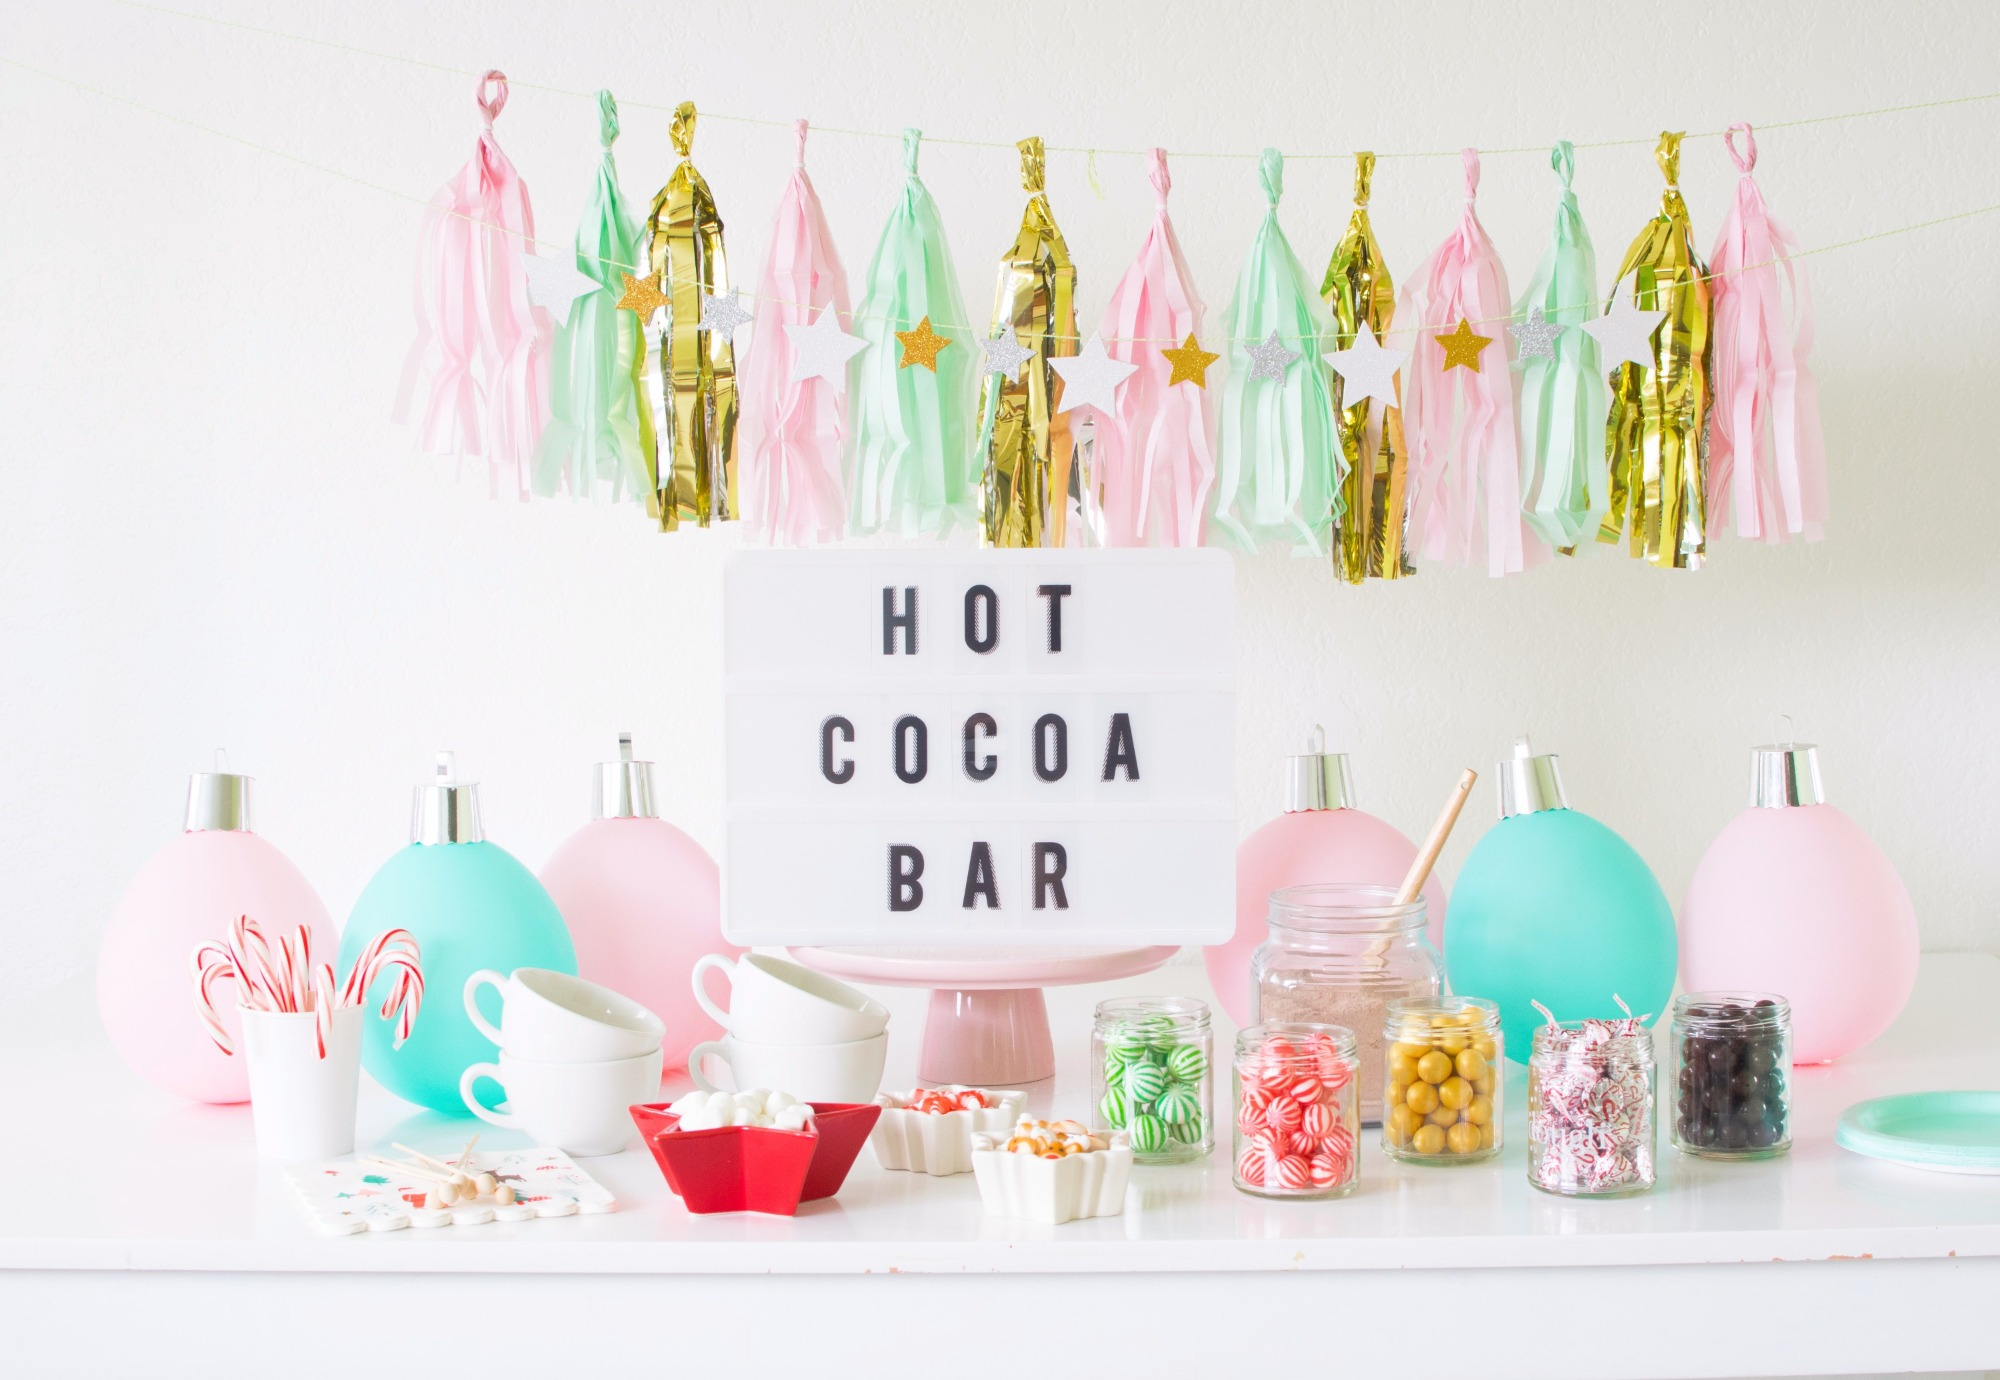 Hot Cocoa Bar from Holiday Cookie Decorating Party by Twinkle Twinkle Little Party | Black Twine